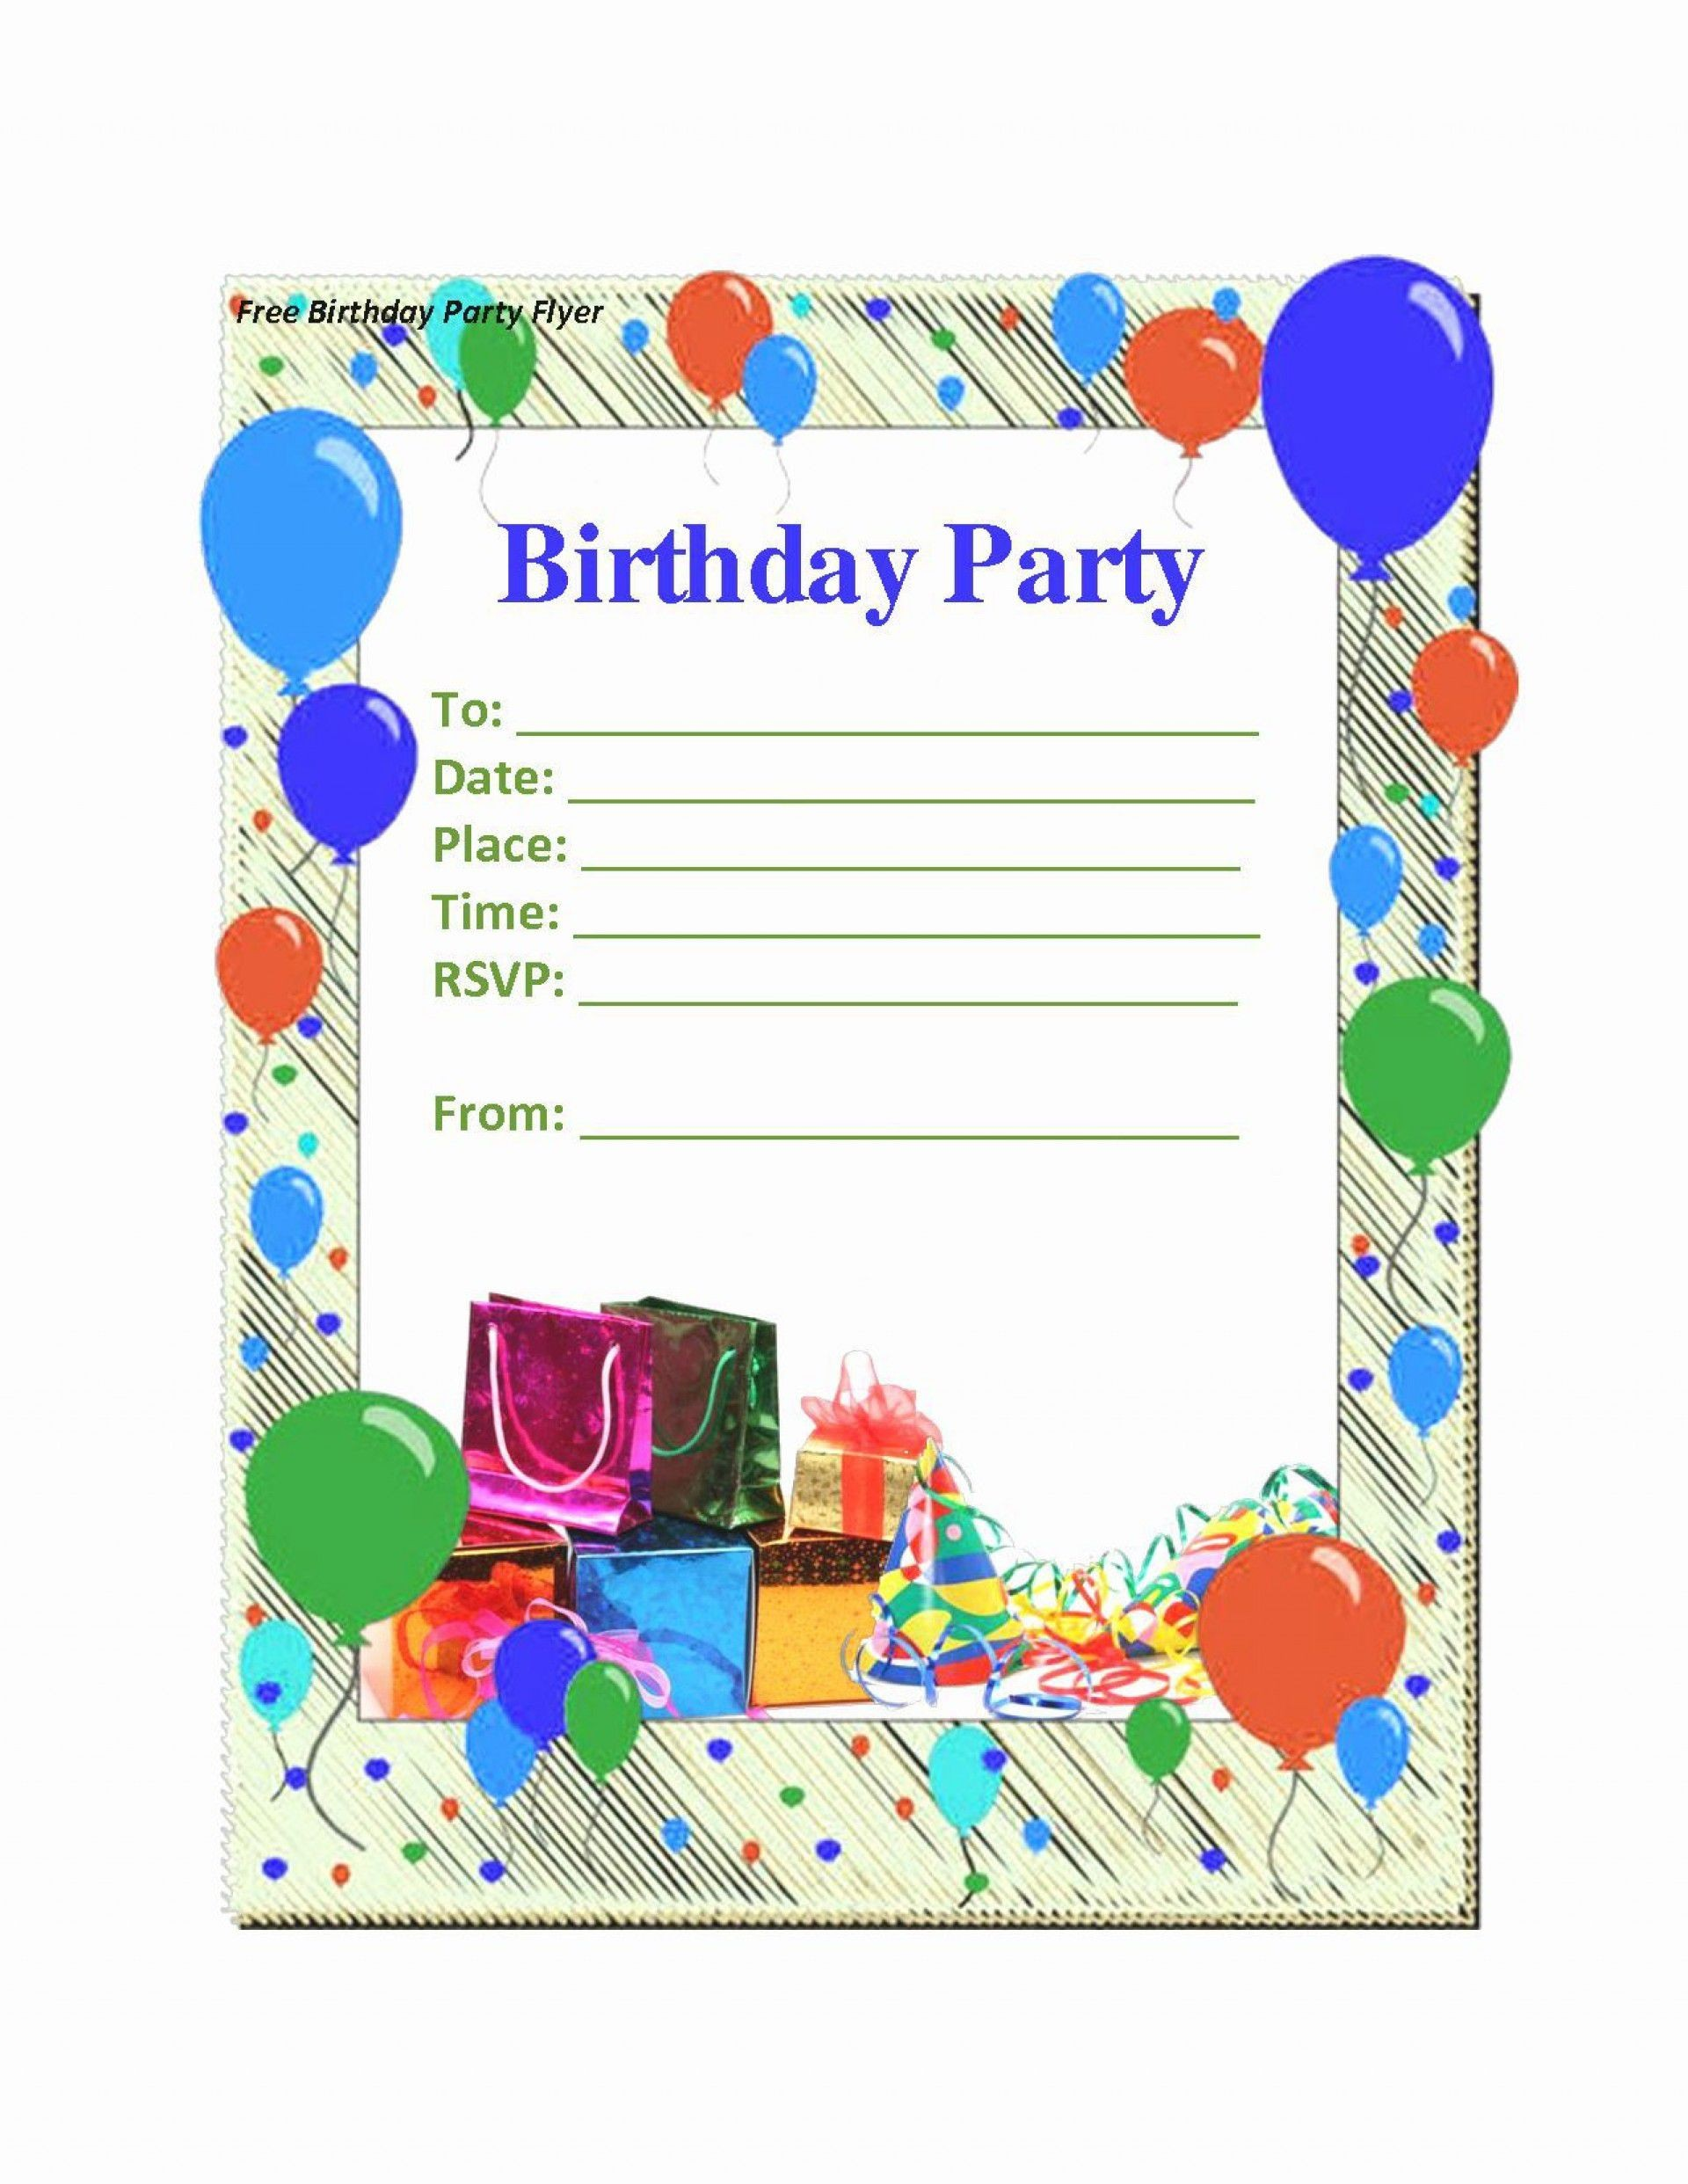 Microsoft Word Birthday Card Invitation Template Addictionary